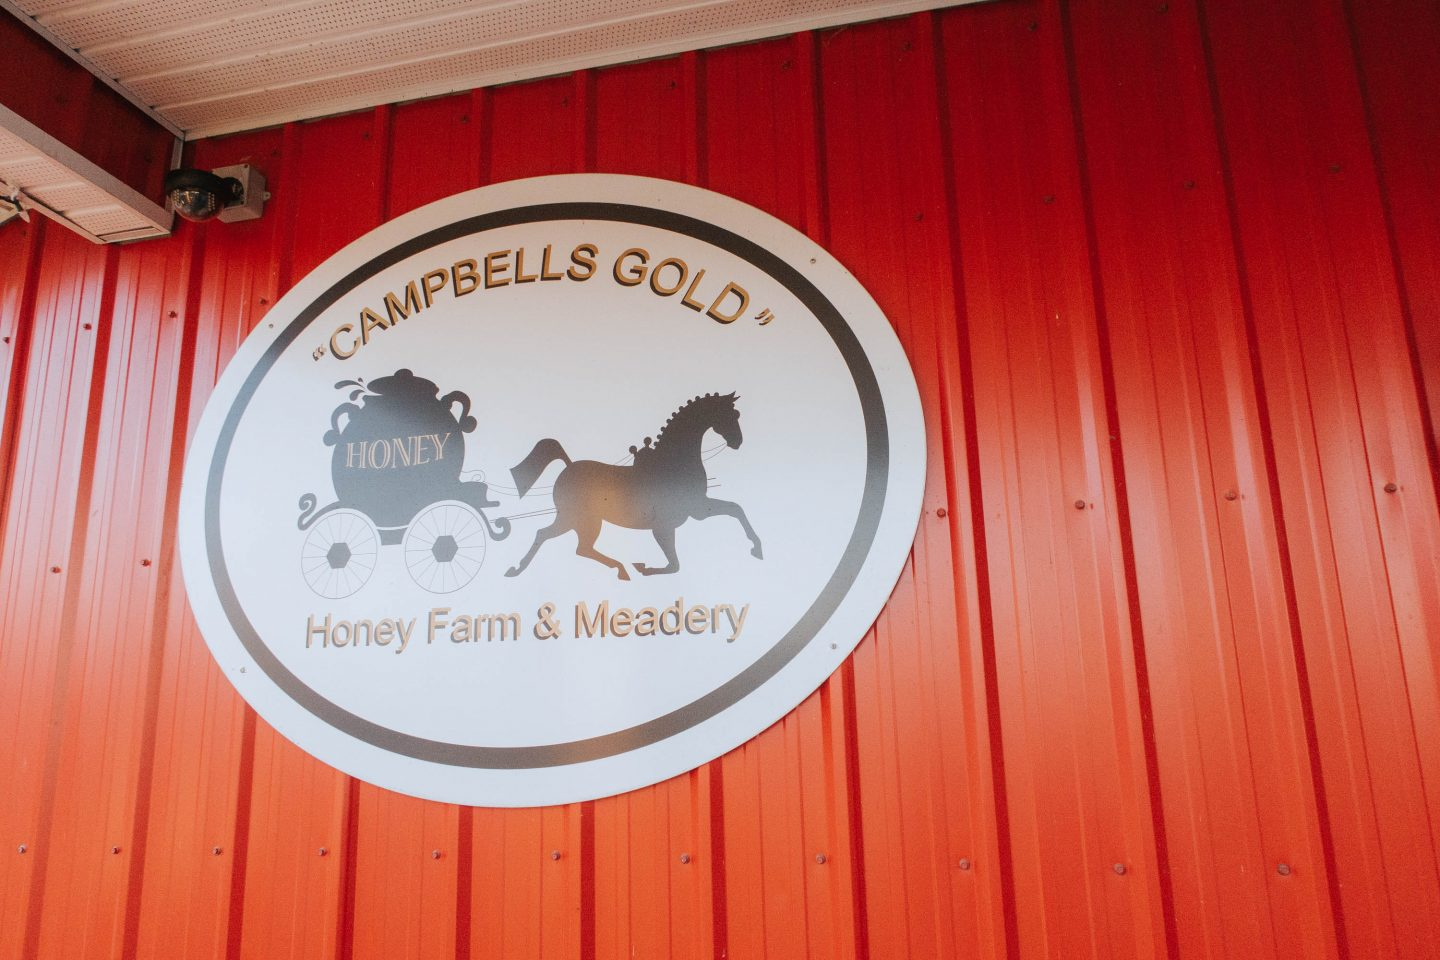 So many types of honey at Campbell's Gold and Honey Meadery